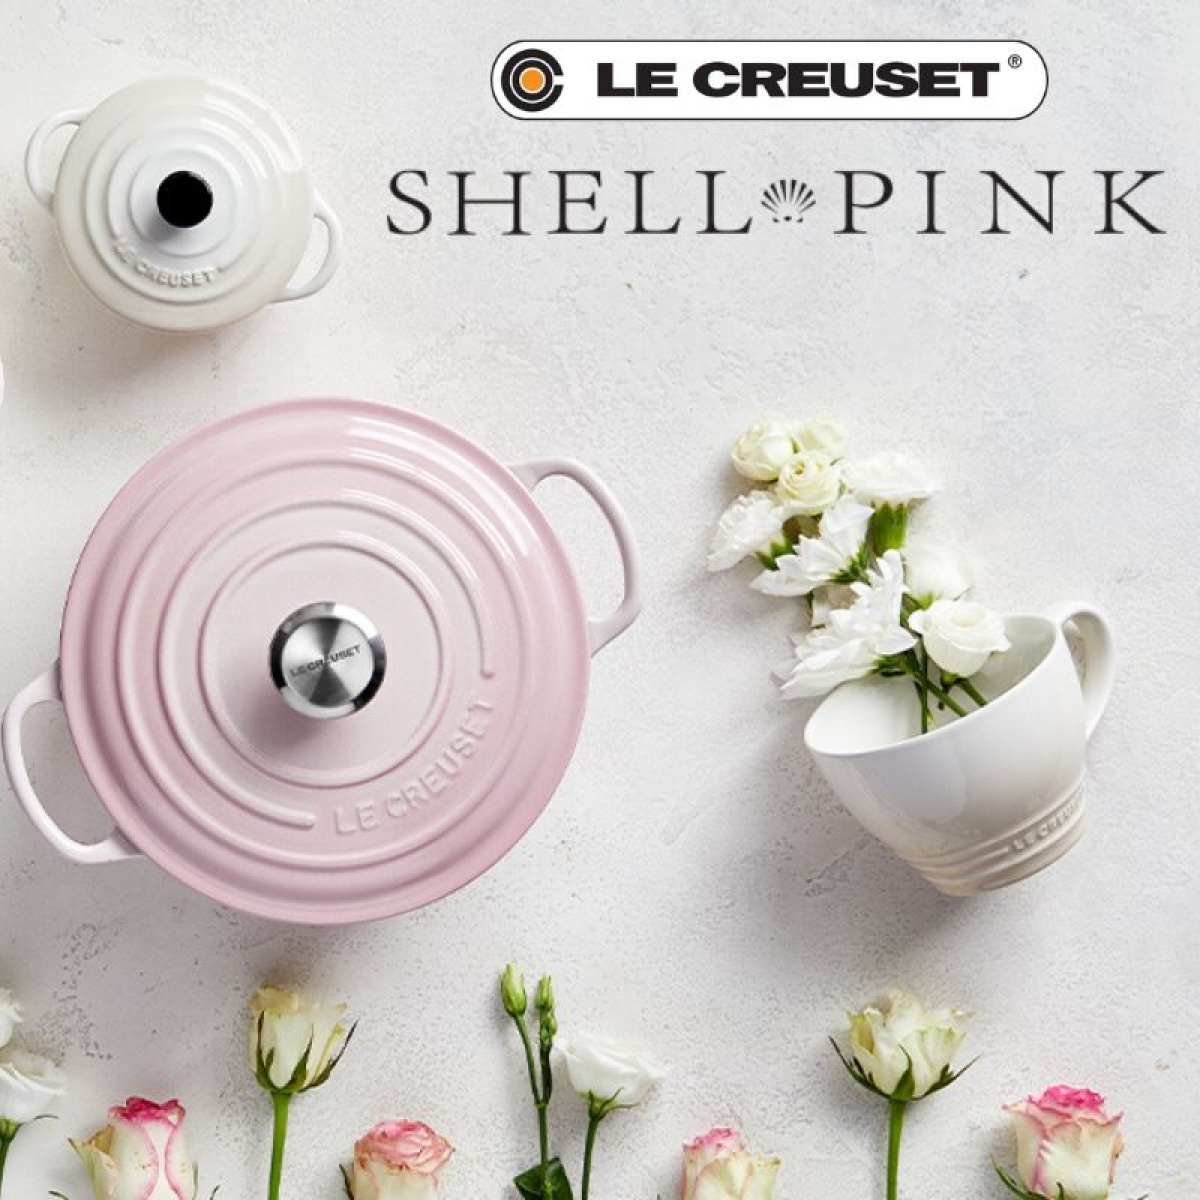 Le Creuset - Shell Pink